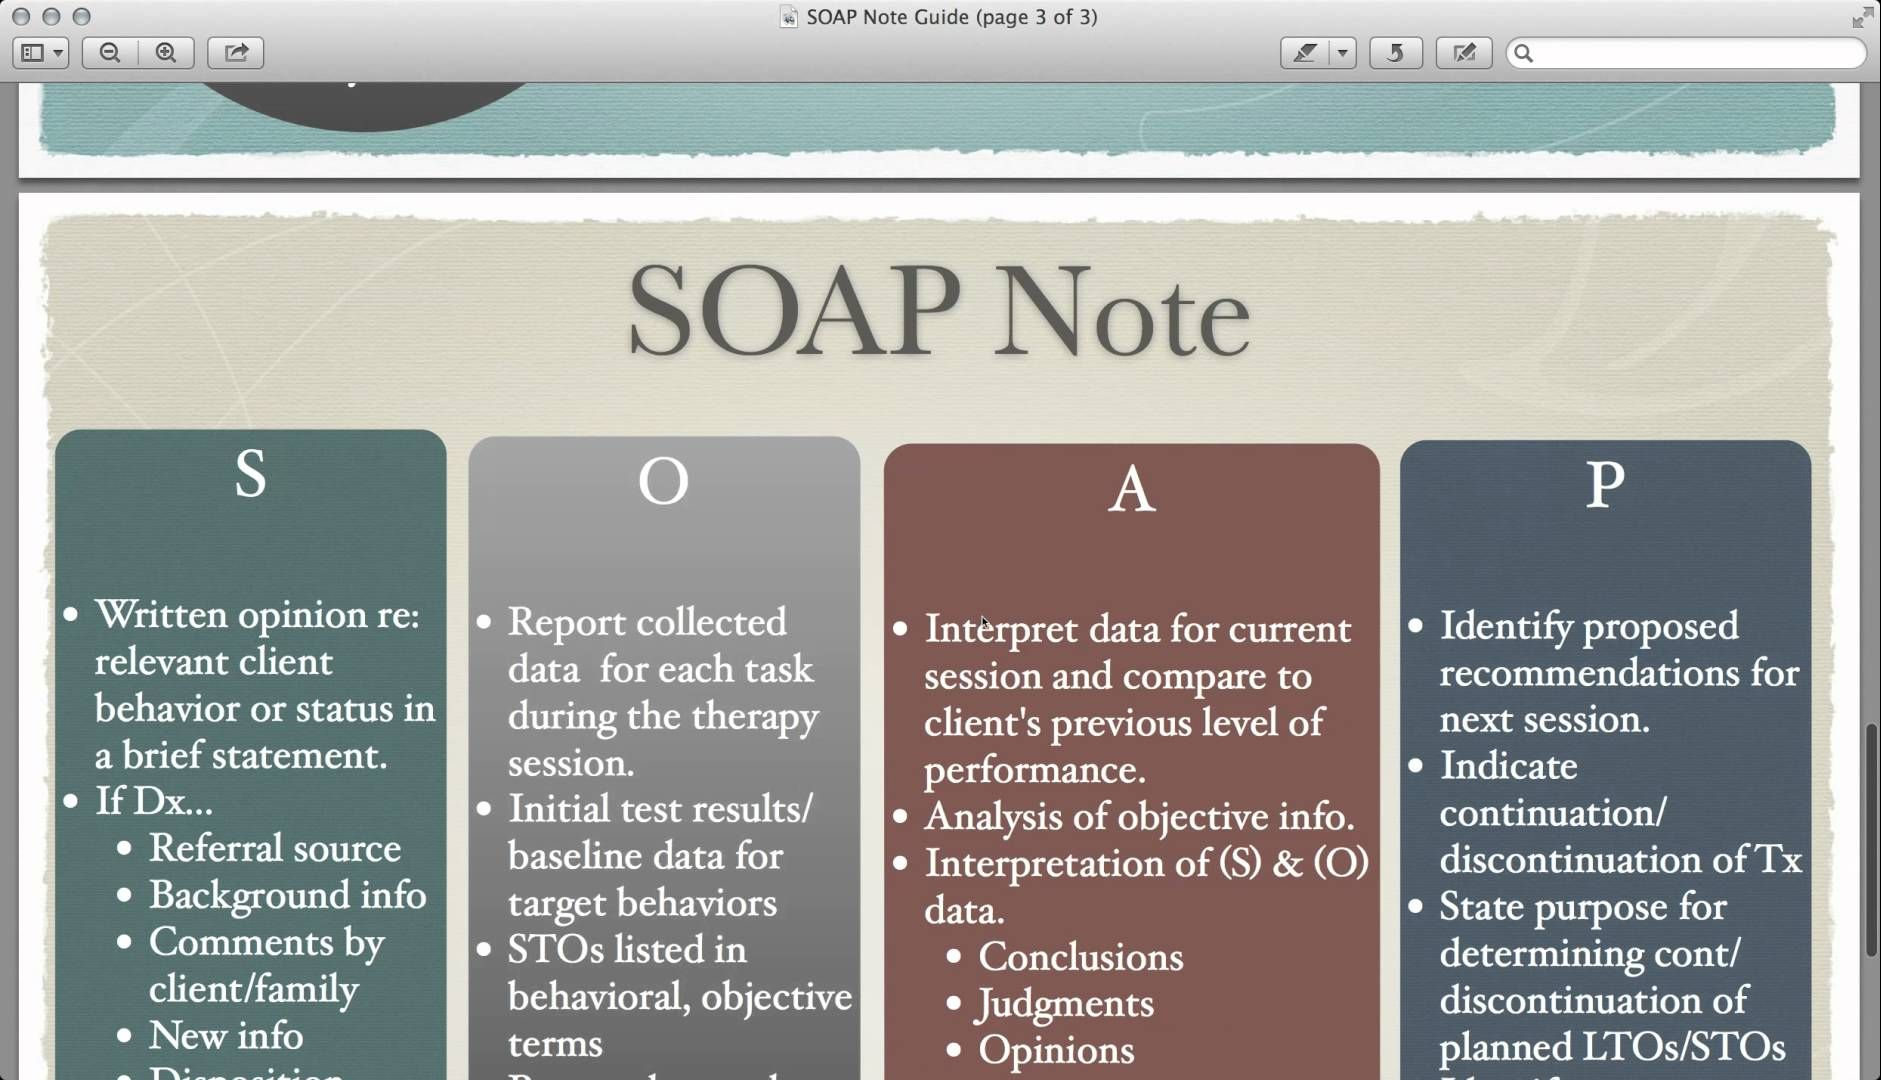 Medical Soap Note Template  Soap Note Guide  Youtube  Salud